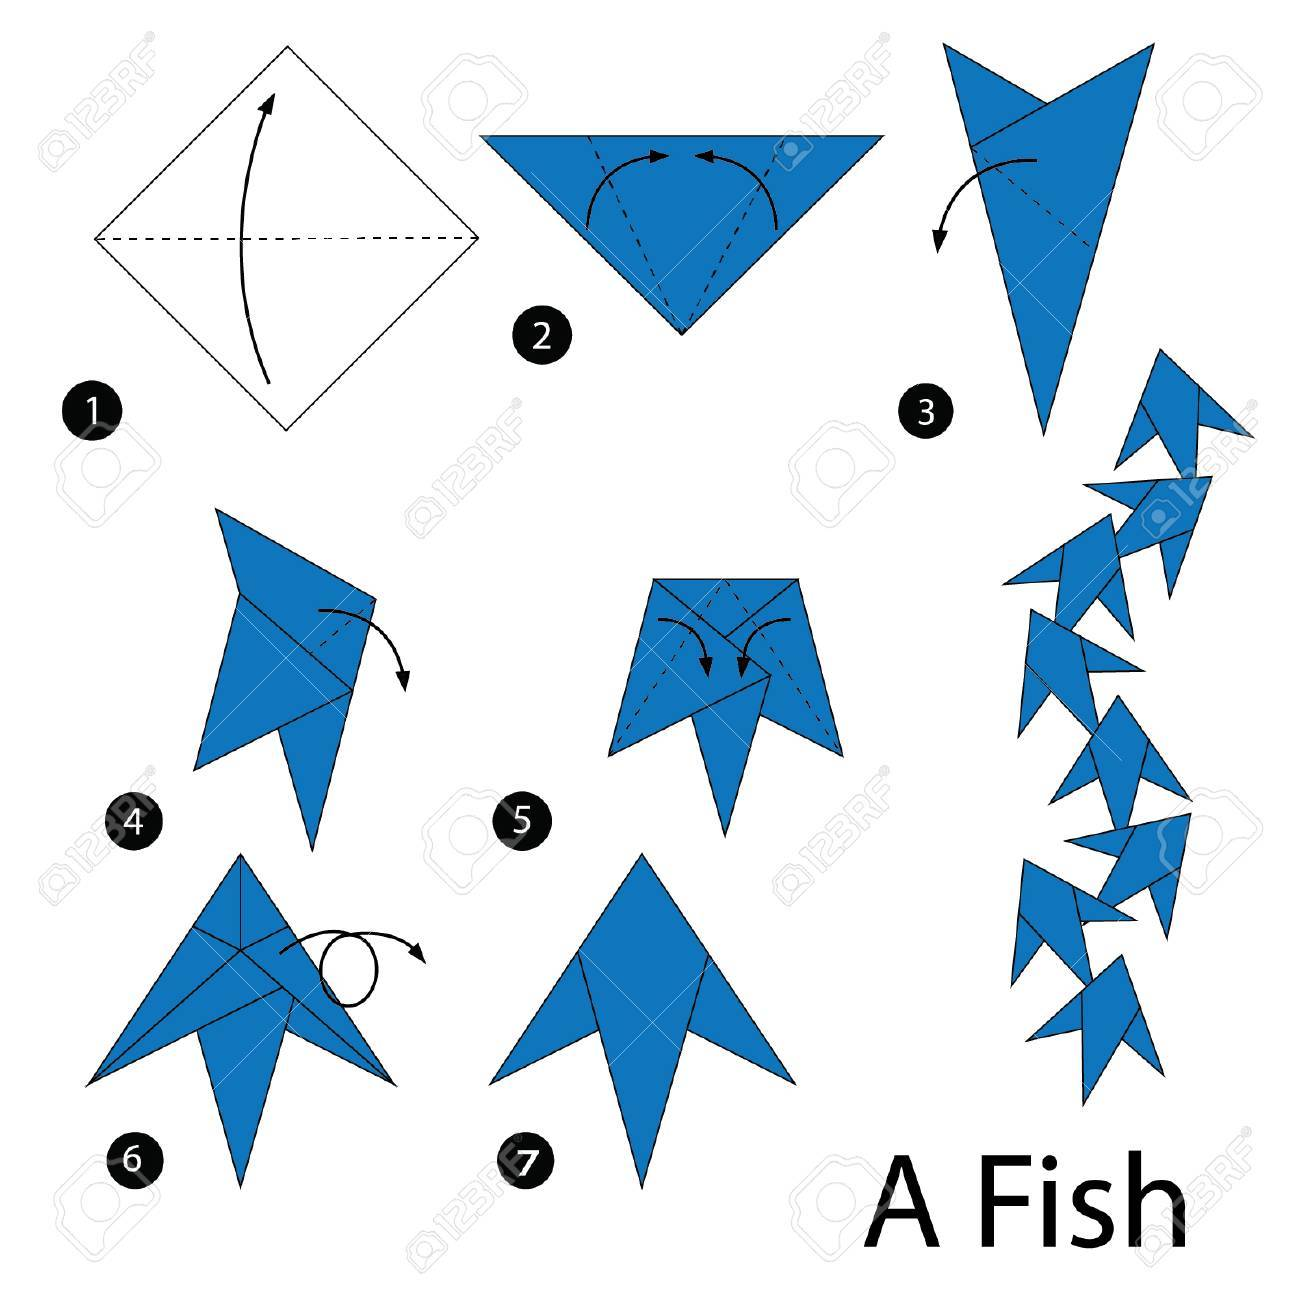 How to make a Paper Fish: Easy Origami Fish Instructions & Diagram | 1300x1300